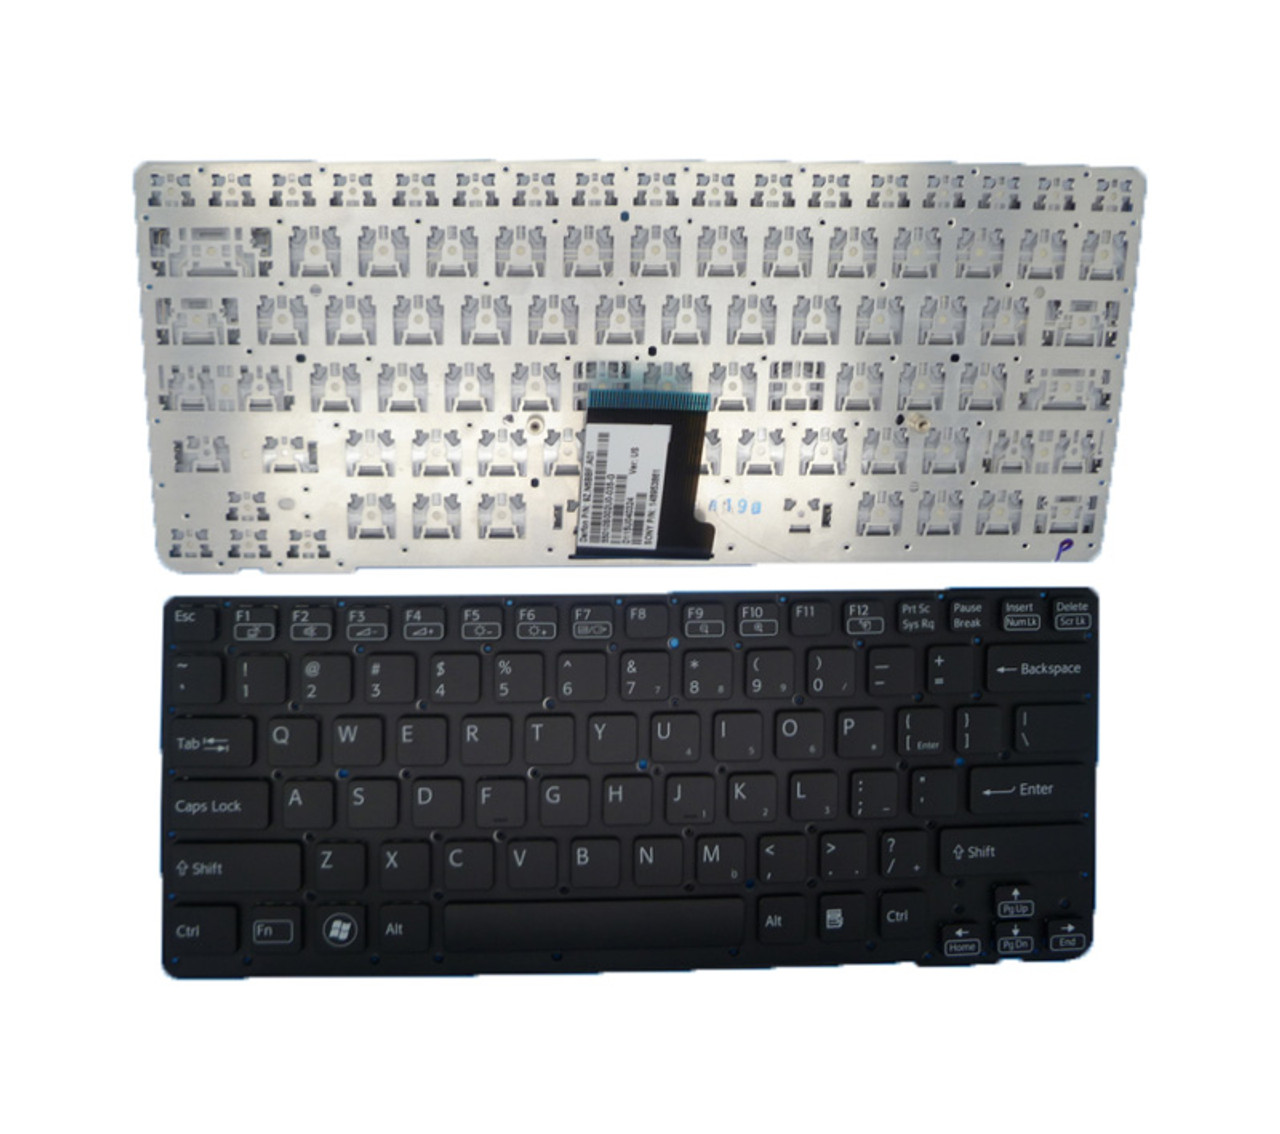 Laptop Keyboard for Sony VAIO VPC-CA VPCCA VPC CA 9Z.N6BBF.A01 148953861 55010S002U0-035-G 9Z.N6BSF.A01 14895211 United States US Black